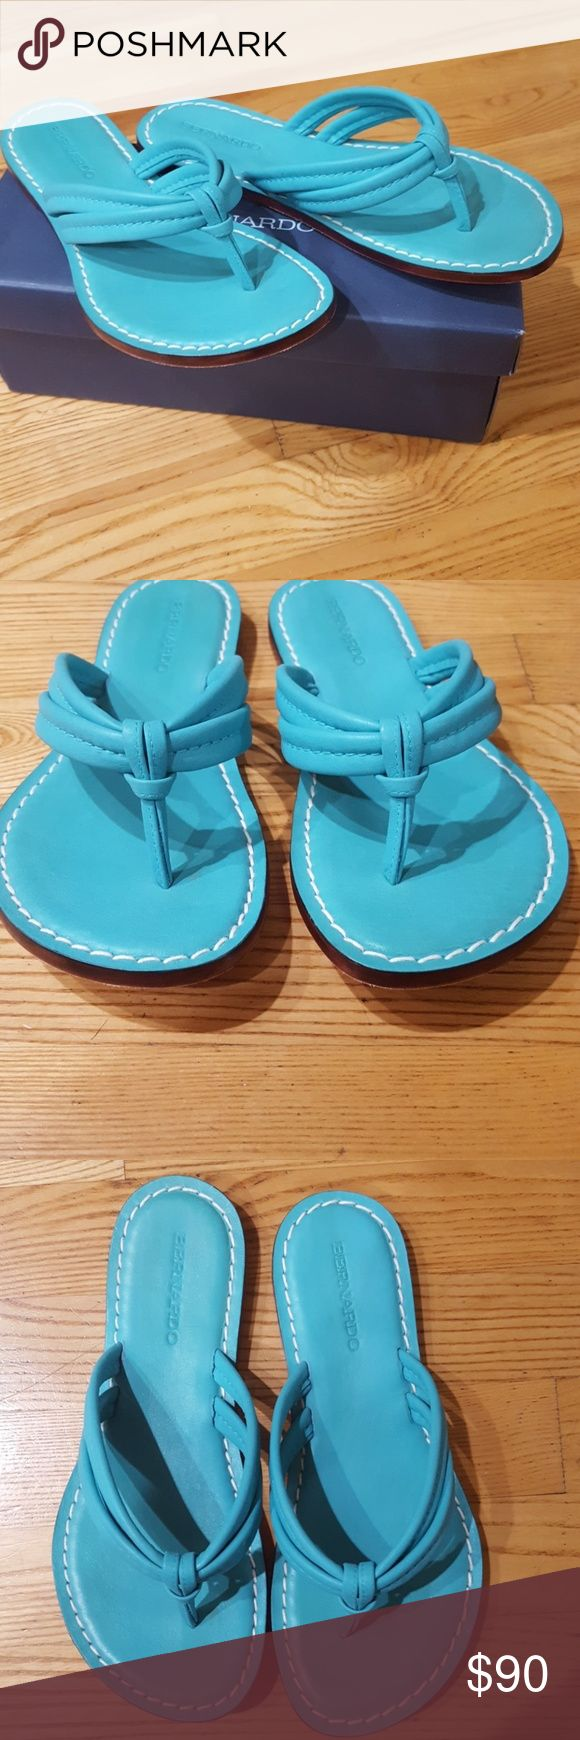 NIB Bernardo Miami soft leather flip flops 8.5 NIB Bernardo super soft leather flip flop sandals size 8.5! These are so cute, and the perfect  turquoise color! Brand new in the box, never been worn. Bernardo Shoes Sandals